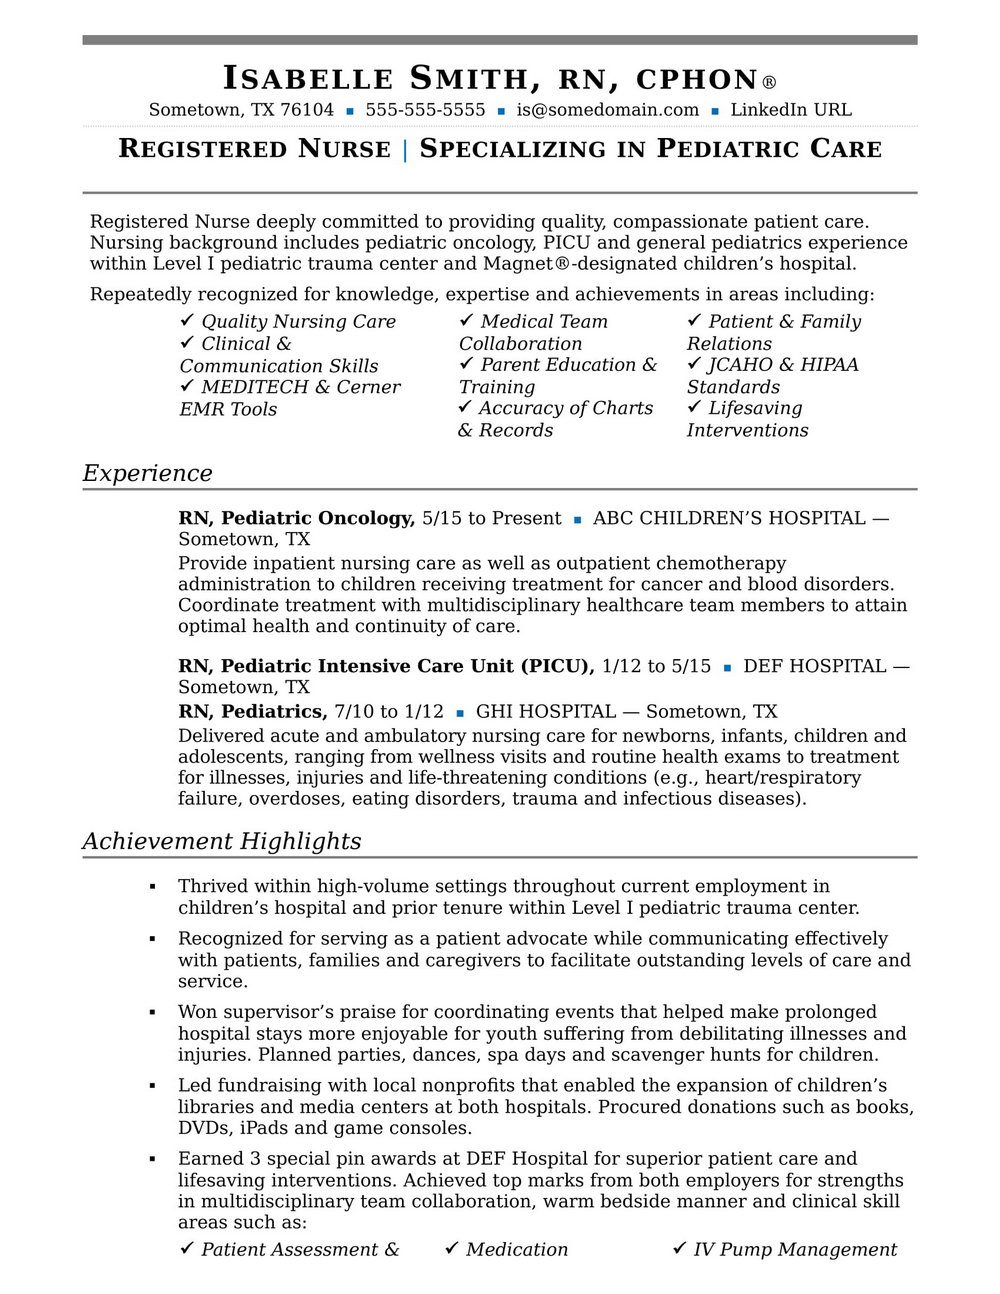 Registered Nurse Resume Sample Pdf